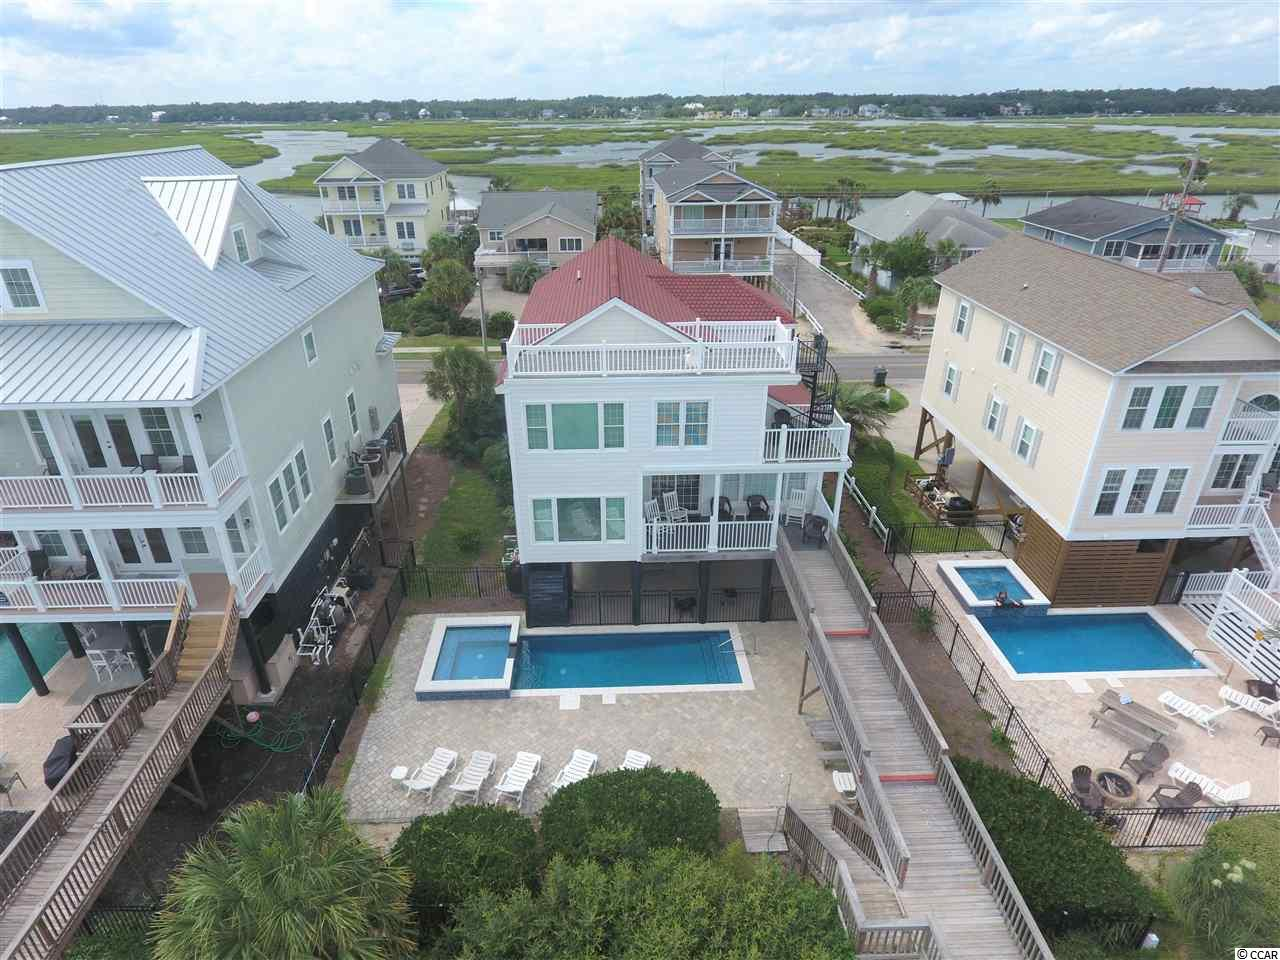 """Get """"Unplugged,"""" relax and enjoy the beach!  1049 South Waccamaw Drive is located just over 1 mile South of the Garden City Pier.  This beach home features 5-bedrooms, 5 full bathrooms, which includes two oceanfront master bedrooms, a large private heated pool and roof top """"crows nest"""" which boasts amazing panoramic views of the ocean, beach and creeks of Murrells Inlet.  All the amenities listed above give this property an excellent rental history!  Contact the listing agent, or your Realtor, for rental information or to schedule a private showing."""